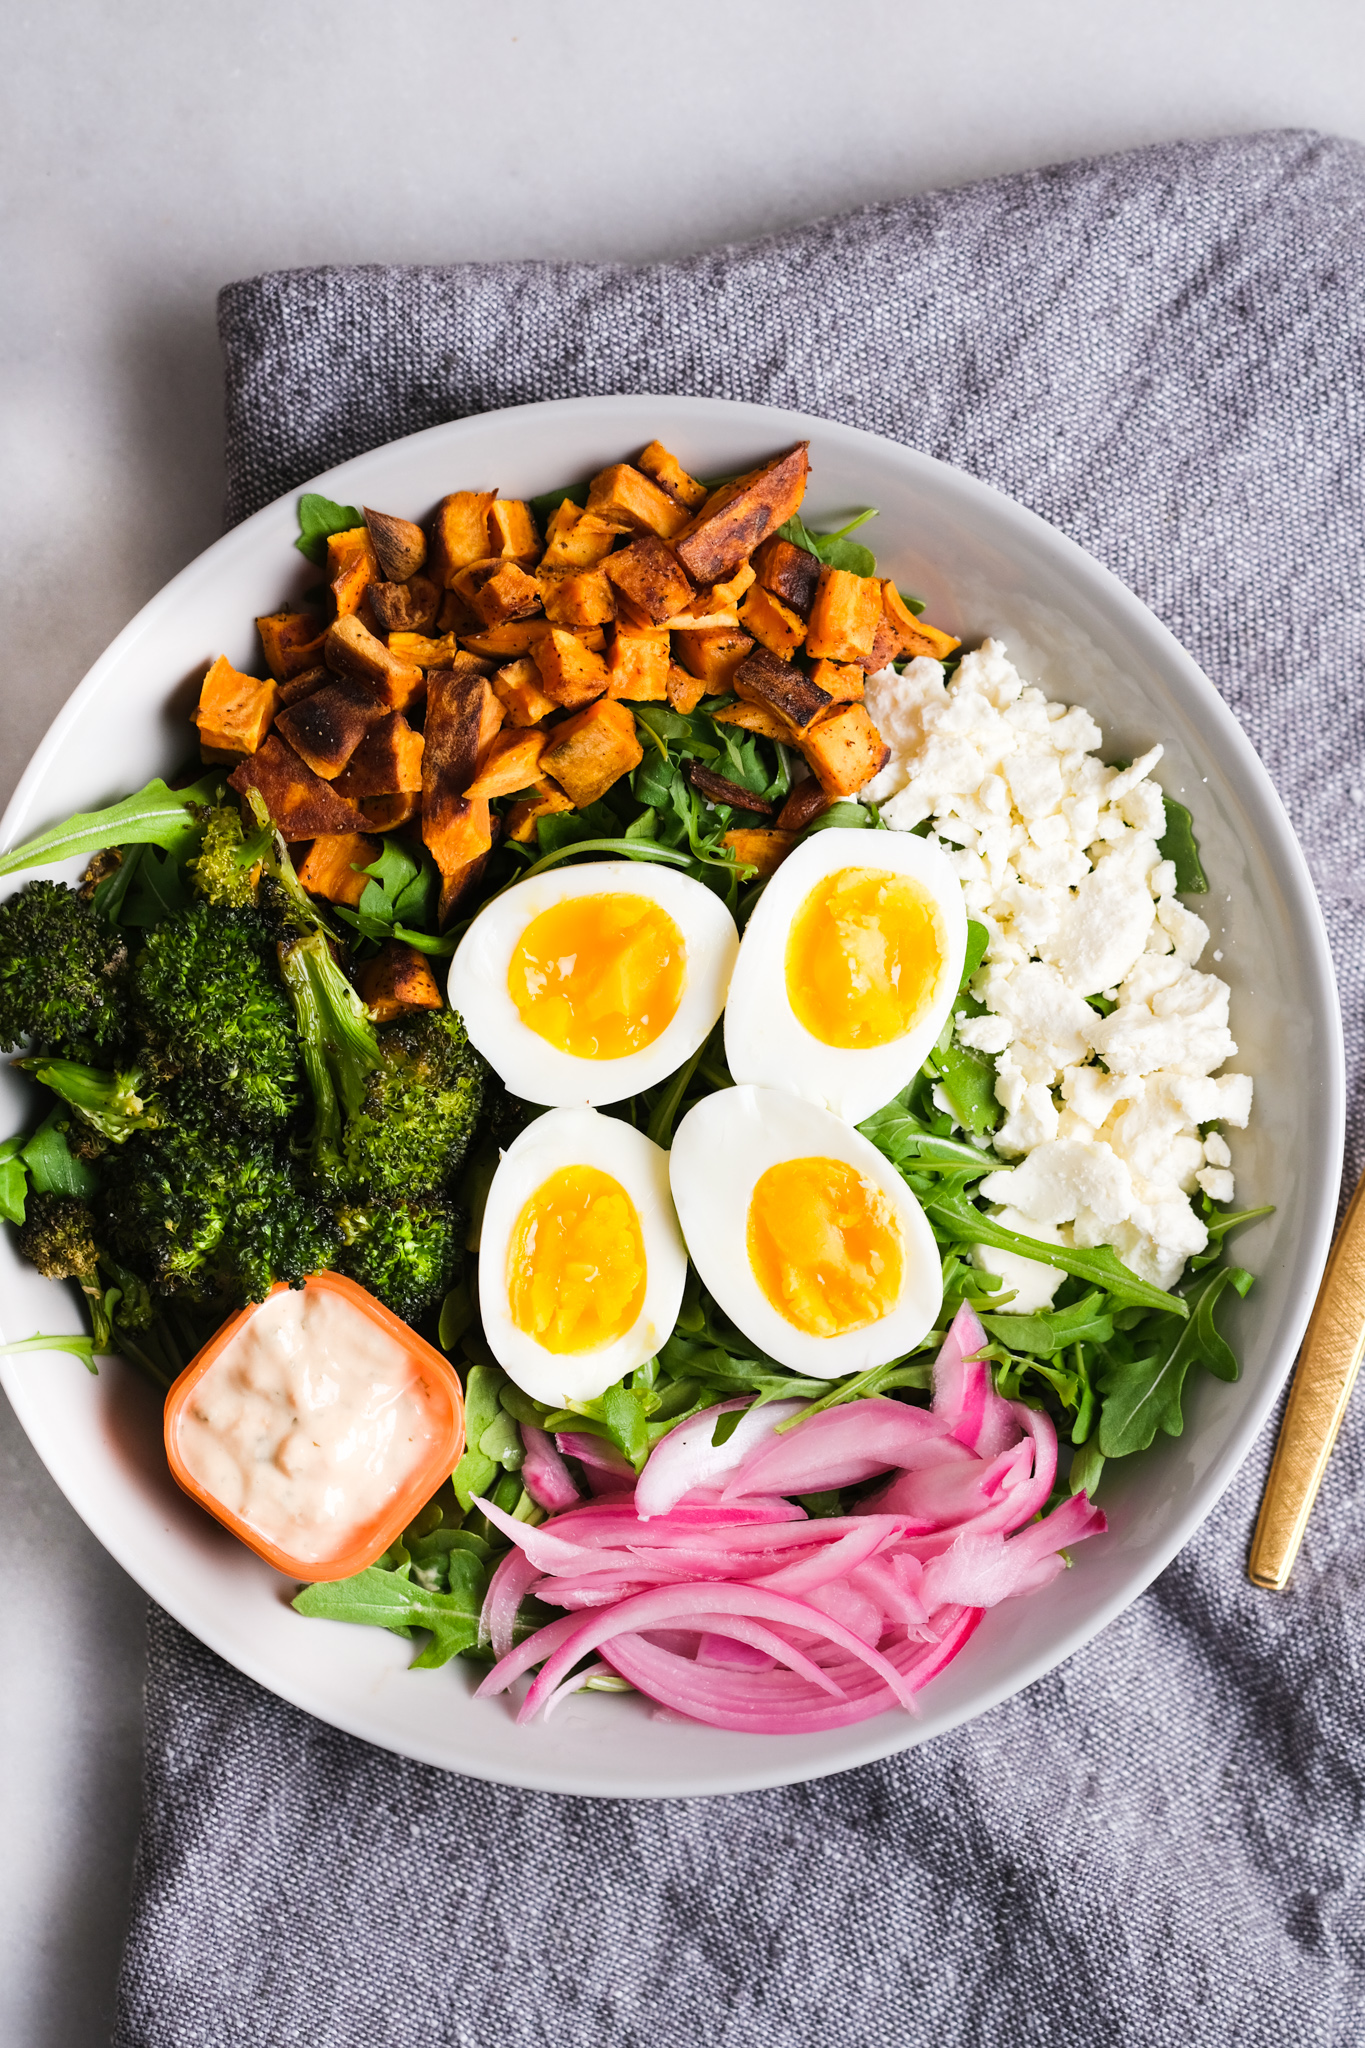 arugula lunch bowl with colorful ingredients